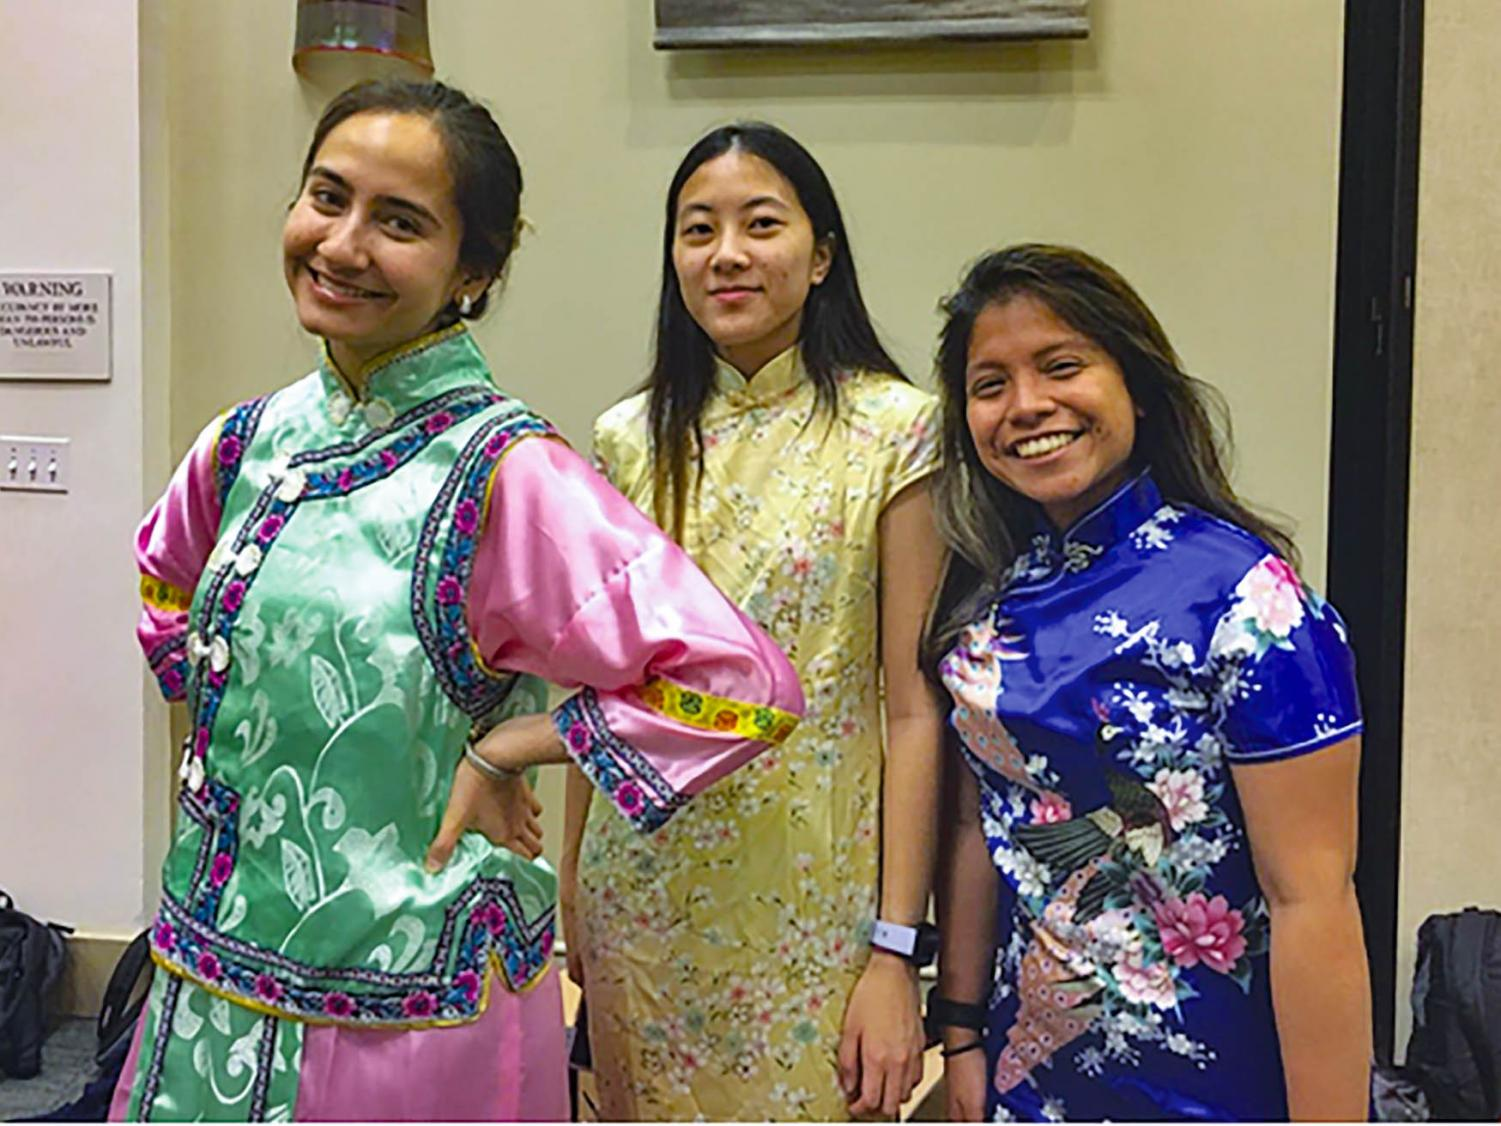 SEU students pose in traditional Chinese cheongsams.